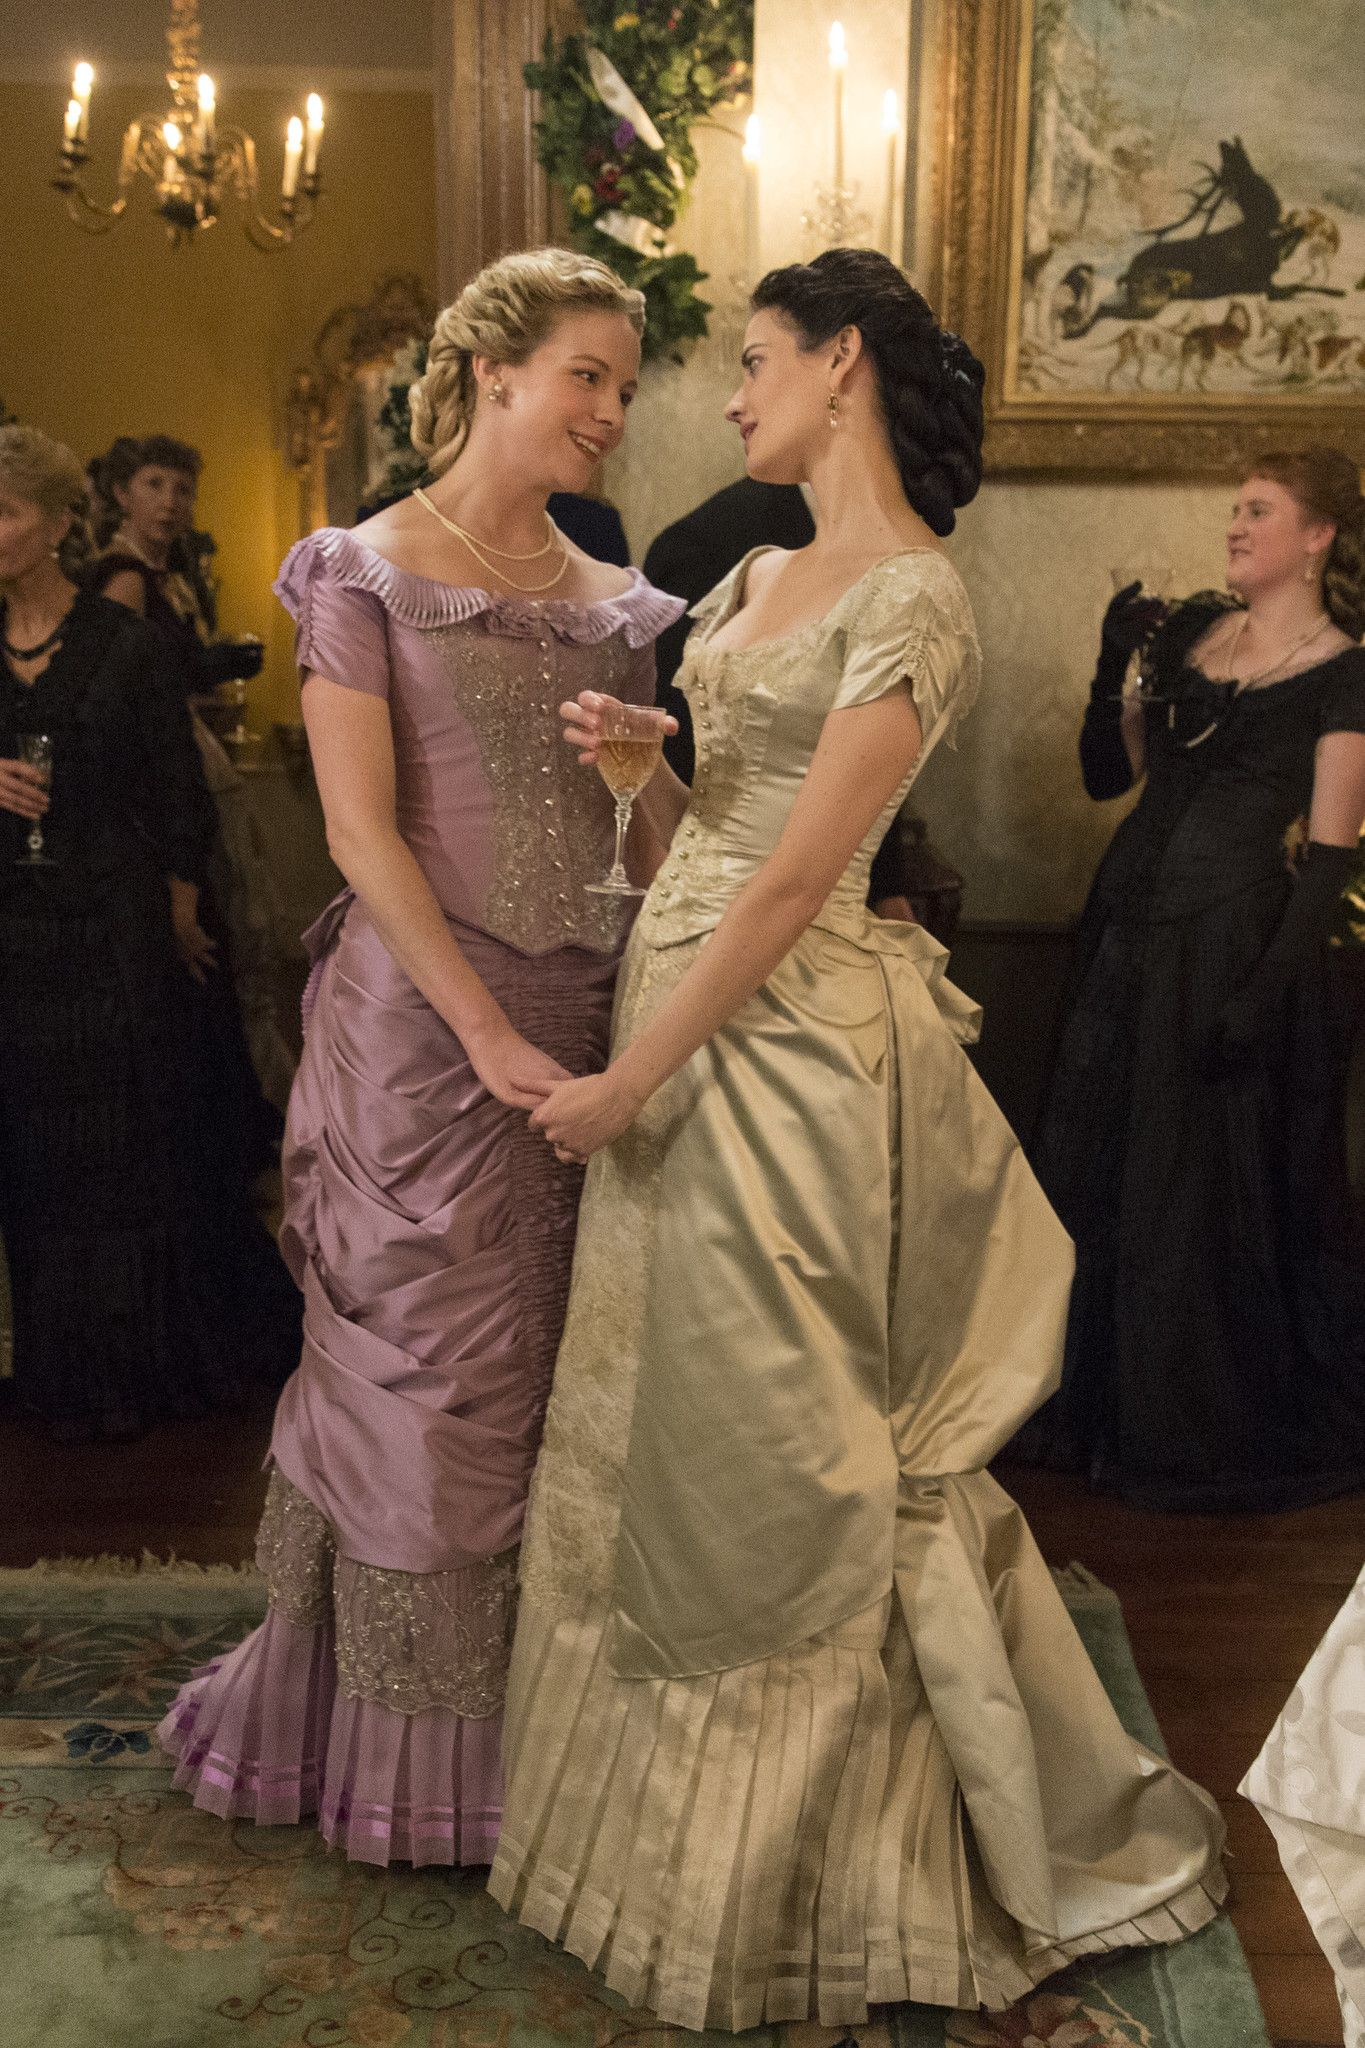 Eva Green as Vanessa Ives in Penny Dreadful | Shows | Pinterest ...